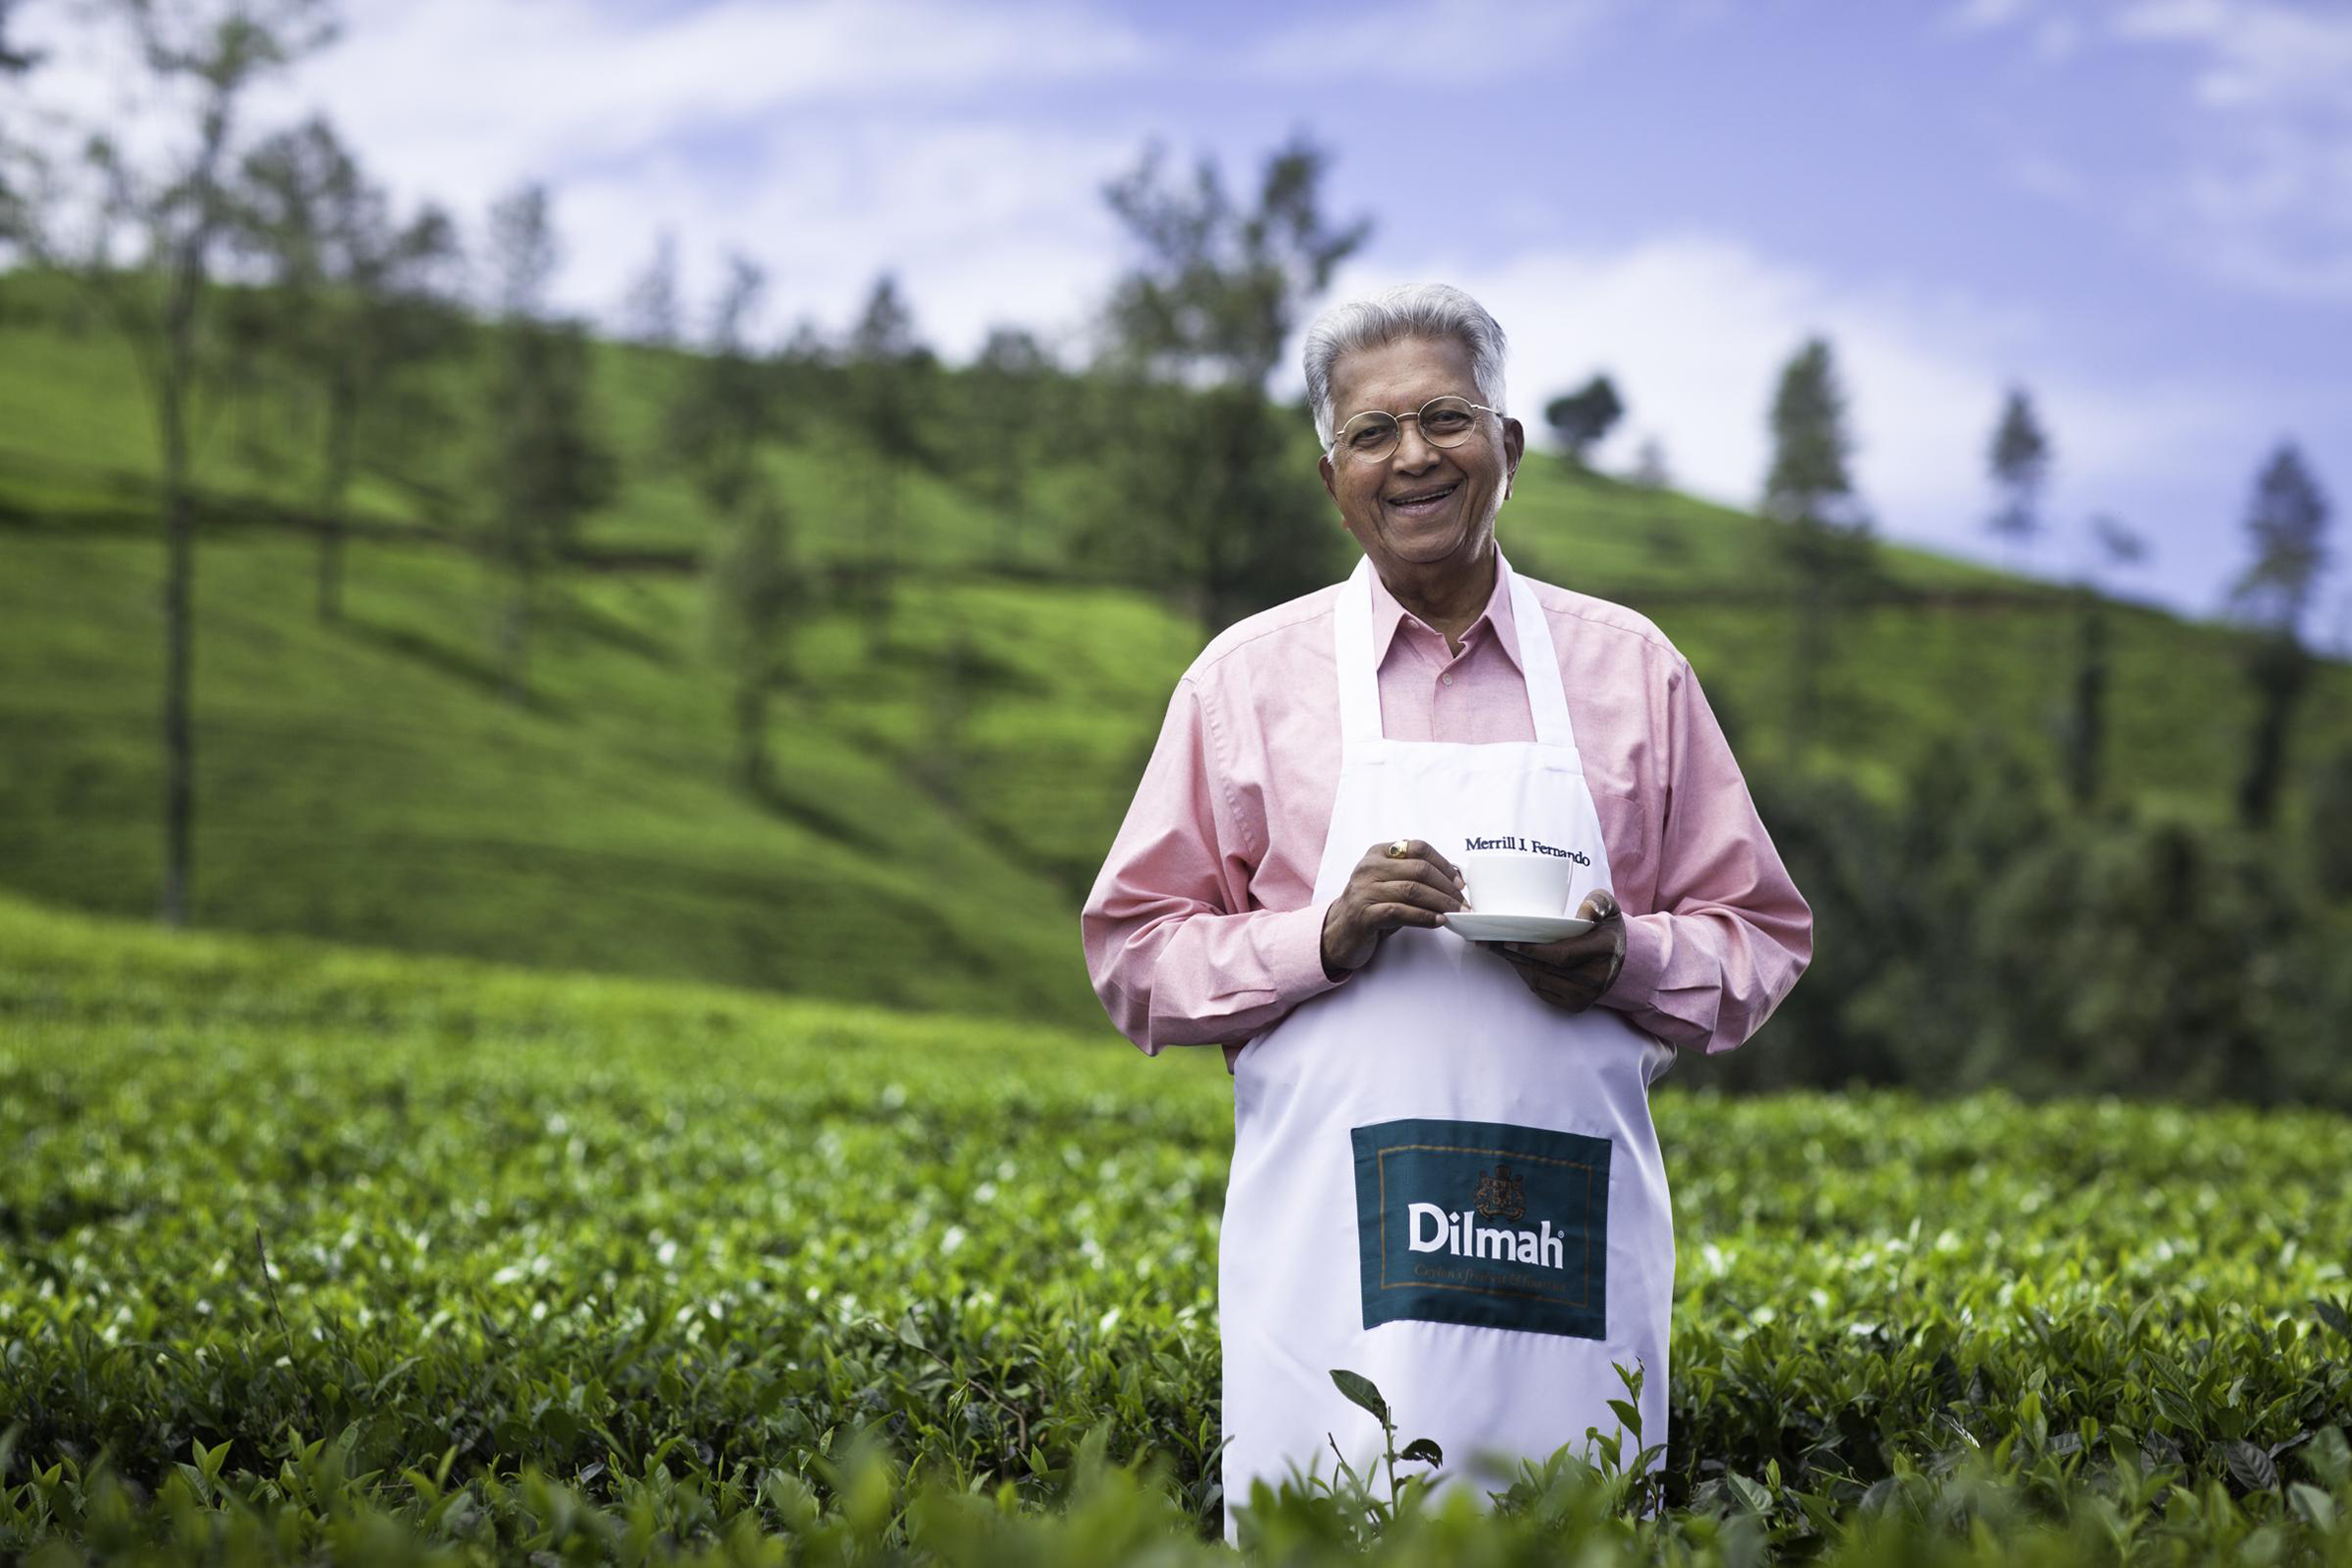 Dilmah Tea founder Merrill J Fernando will visit Sisters Supa IGA on May 10.